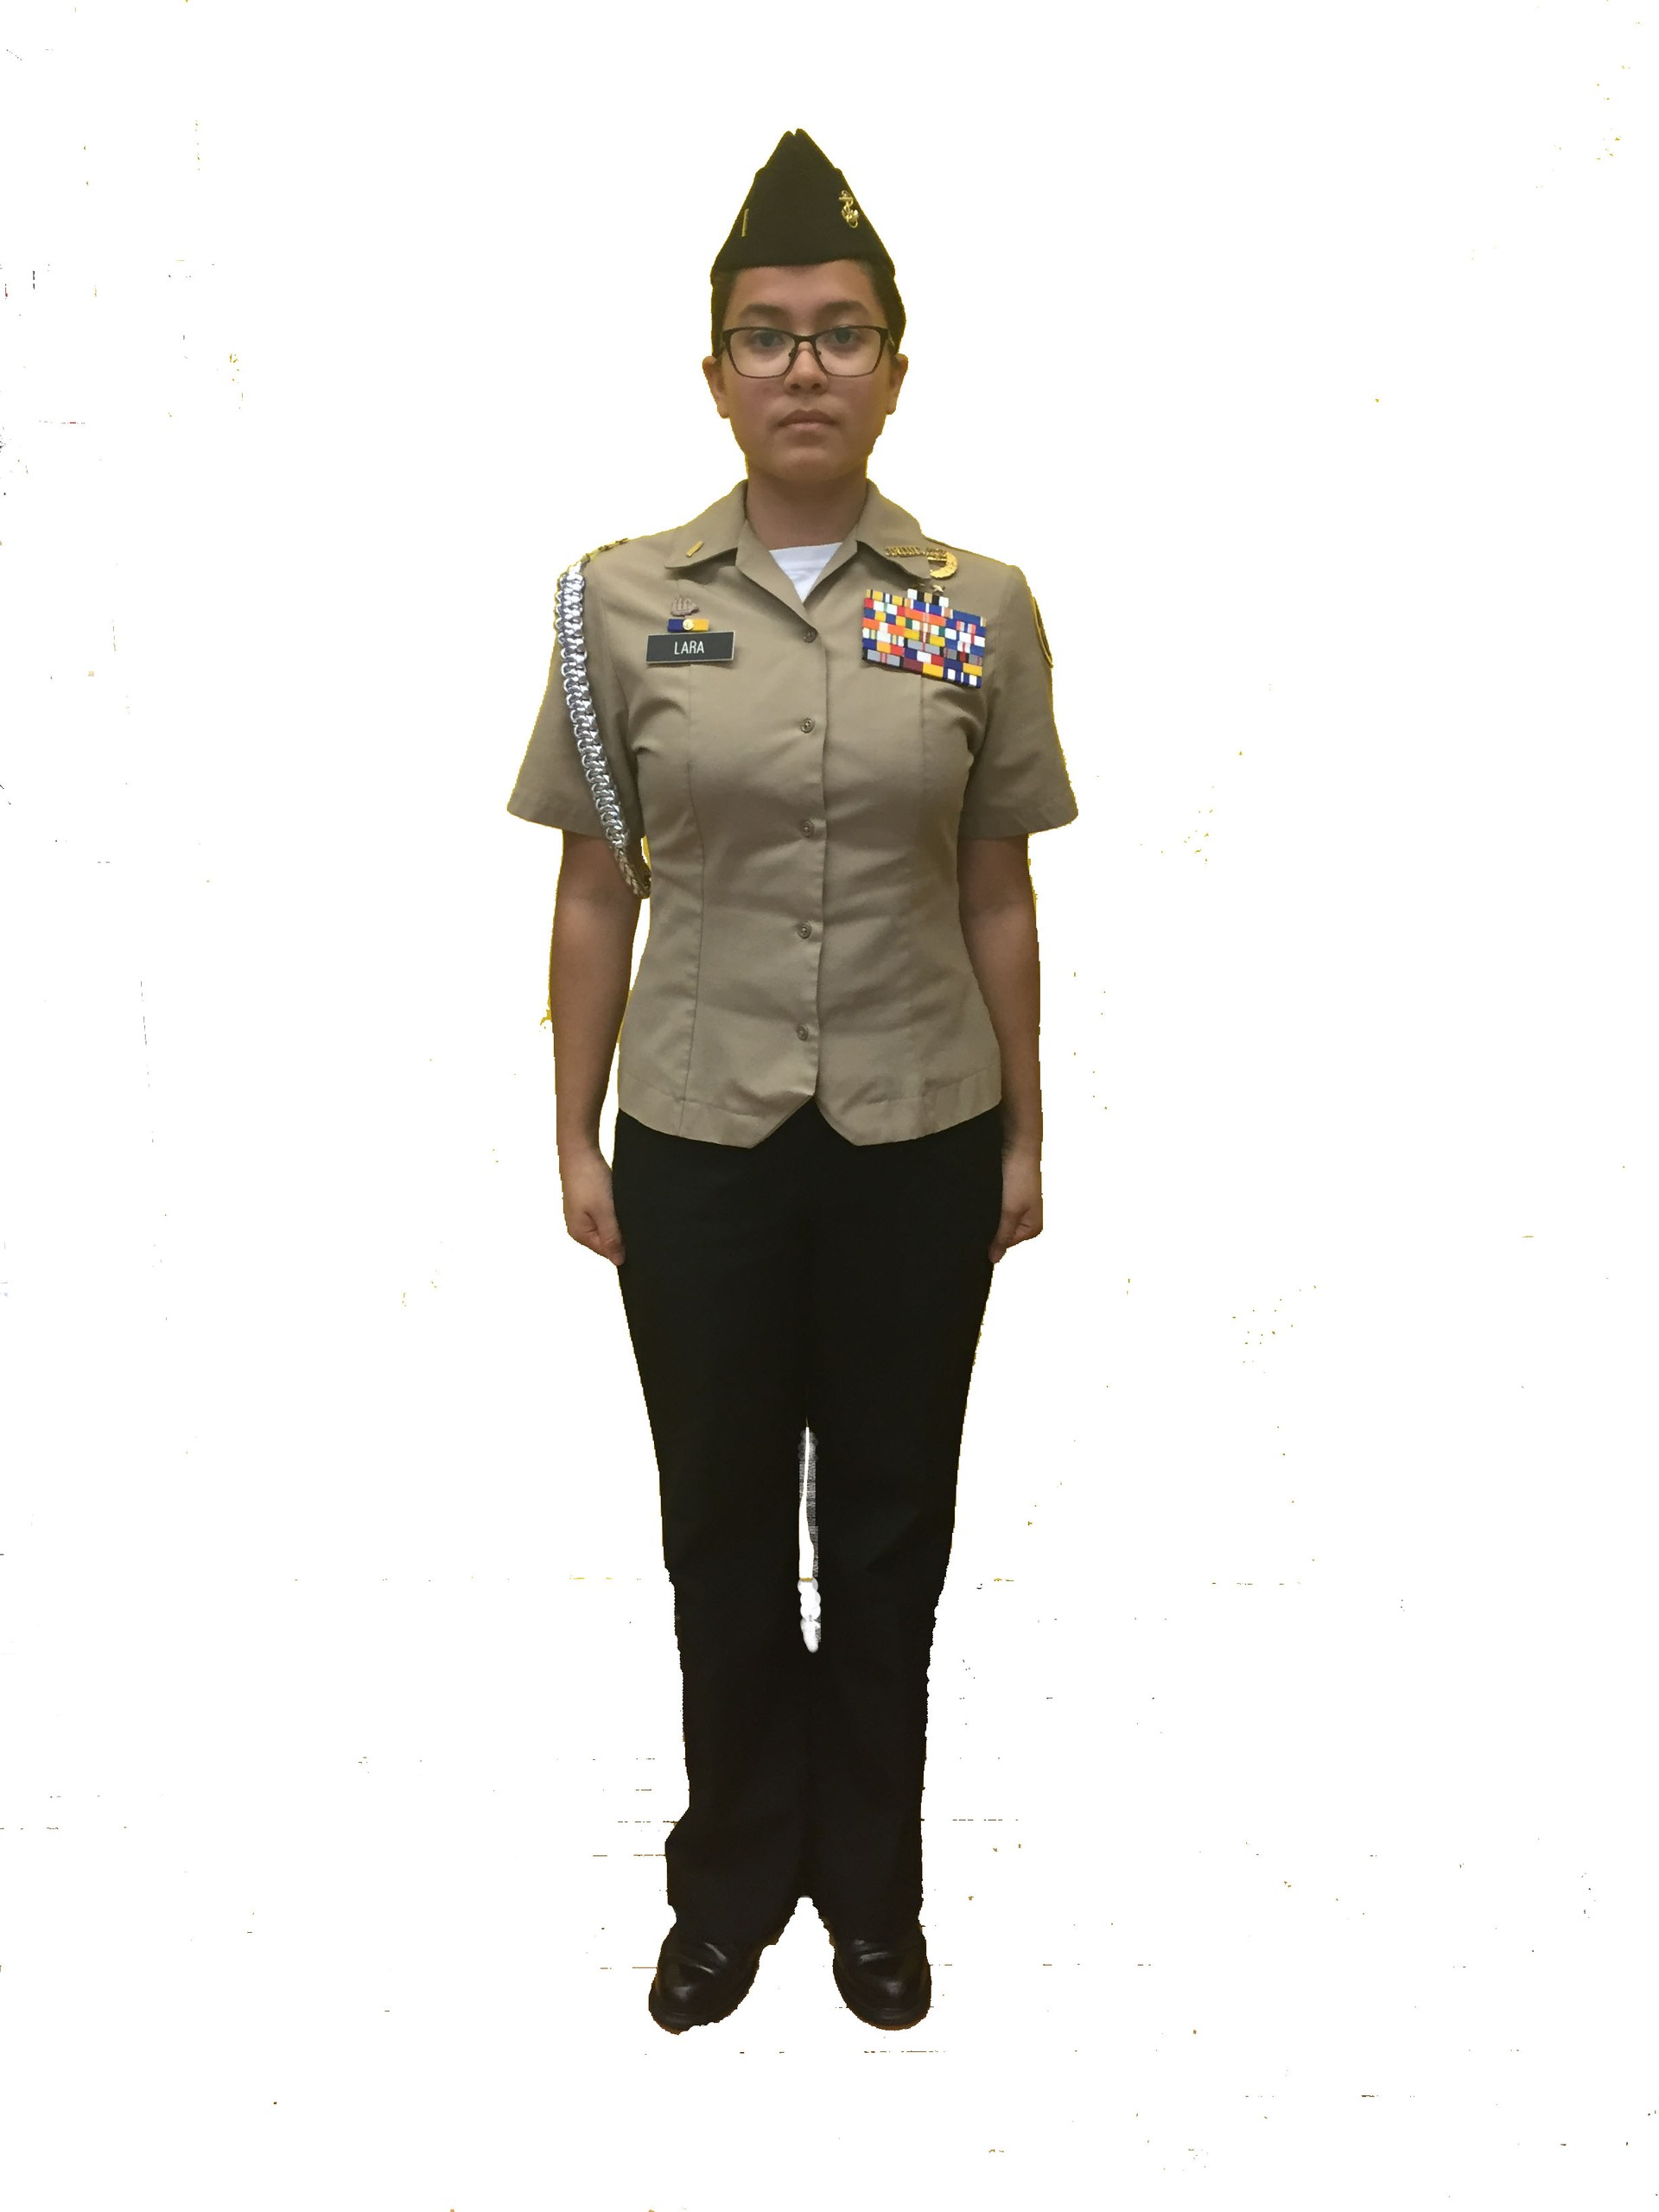 women's uniform